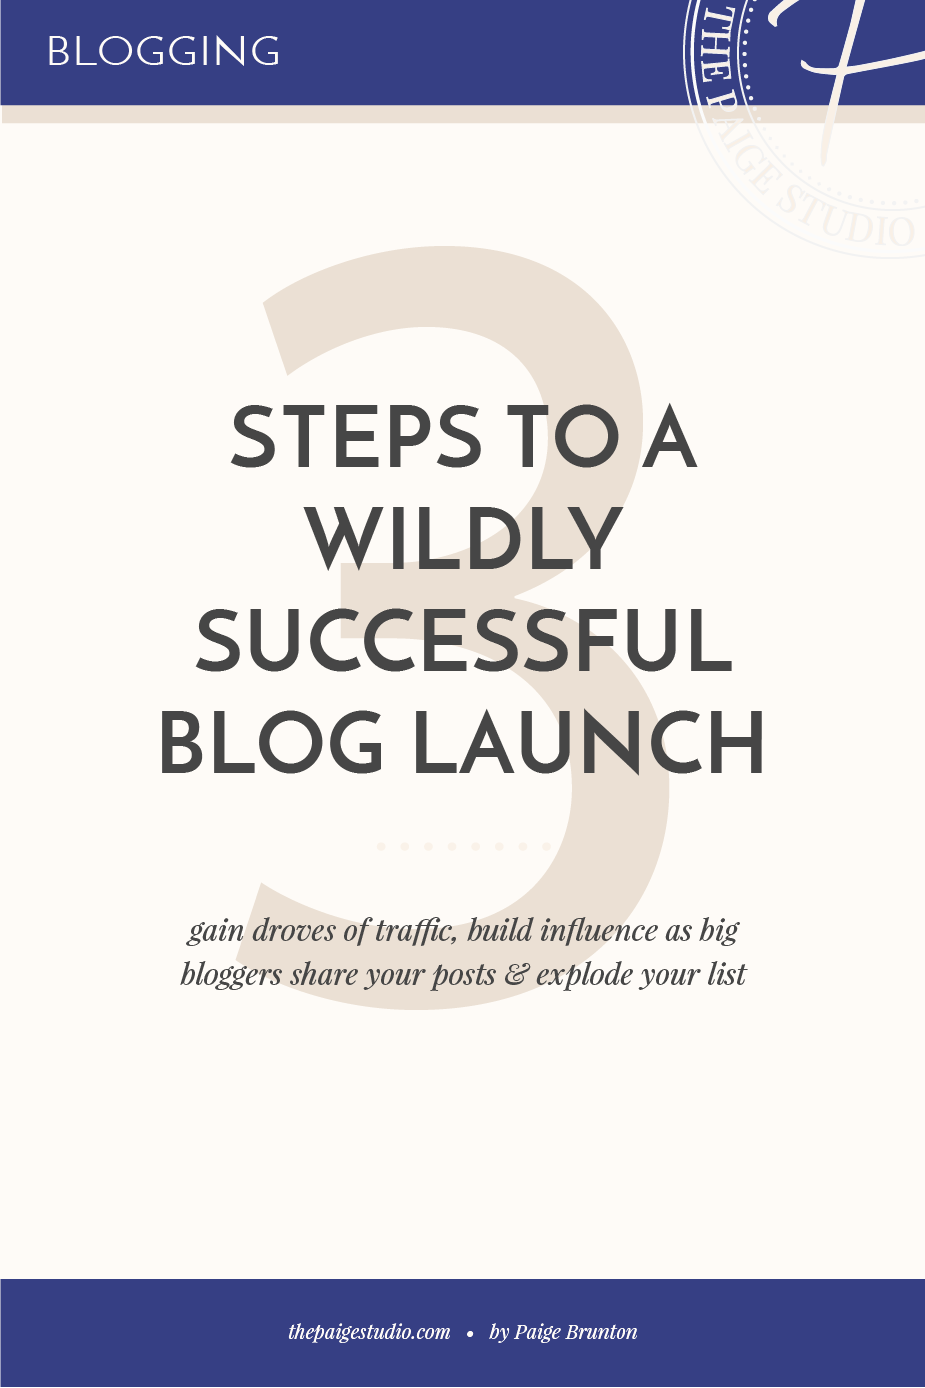 3 steps to a wildly successful blog launch